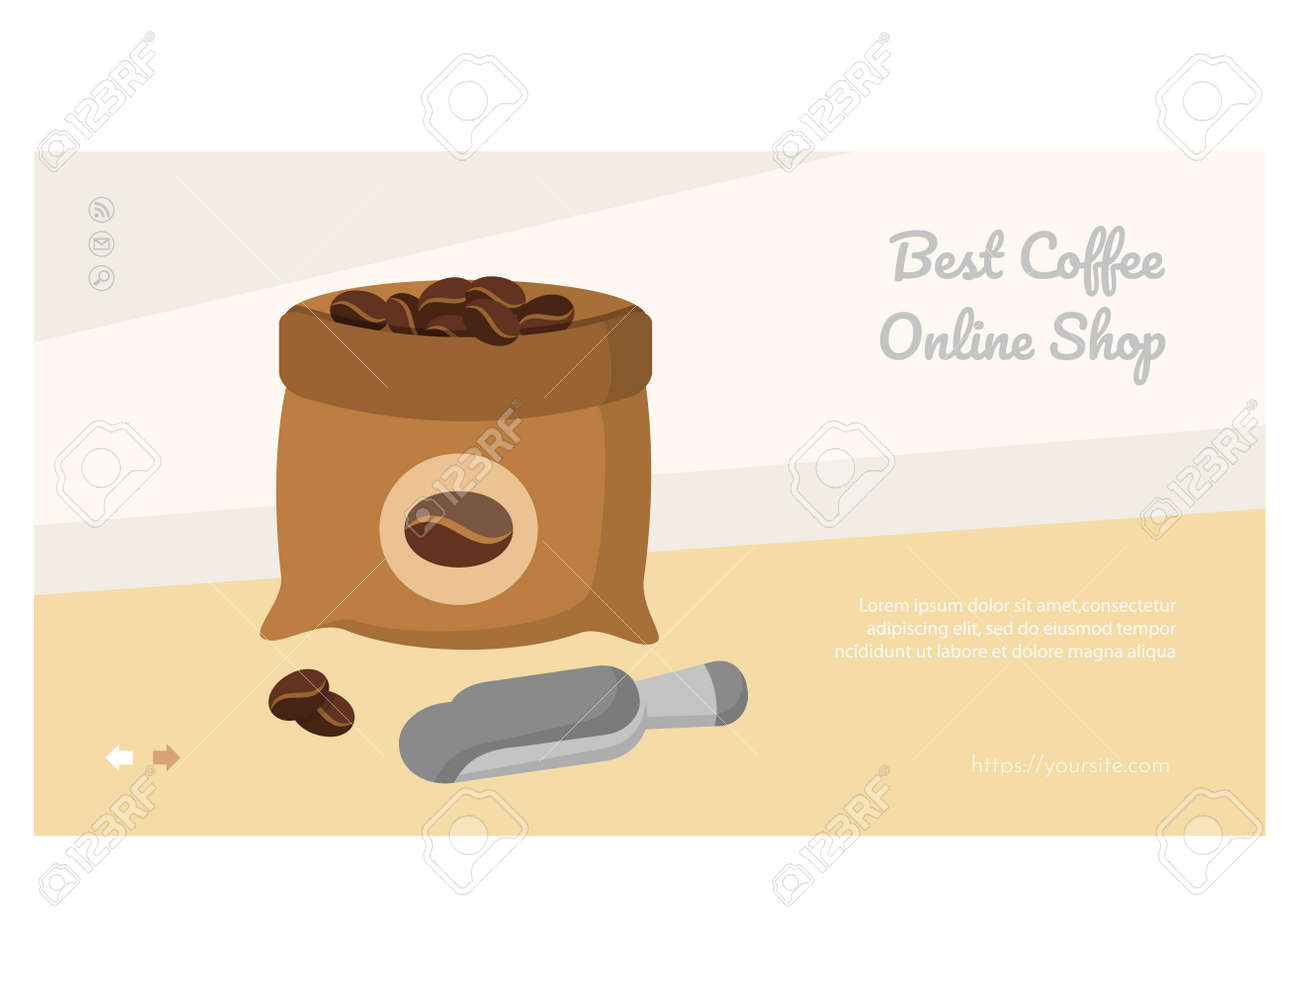 Delicious Coffee web page with geyser coffee maker - 168346714